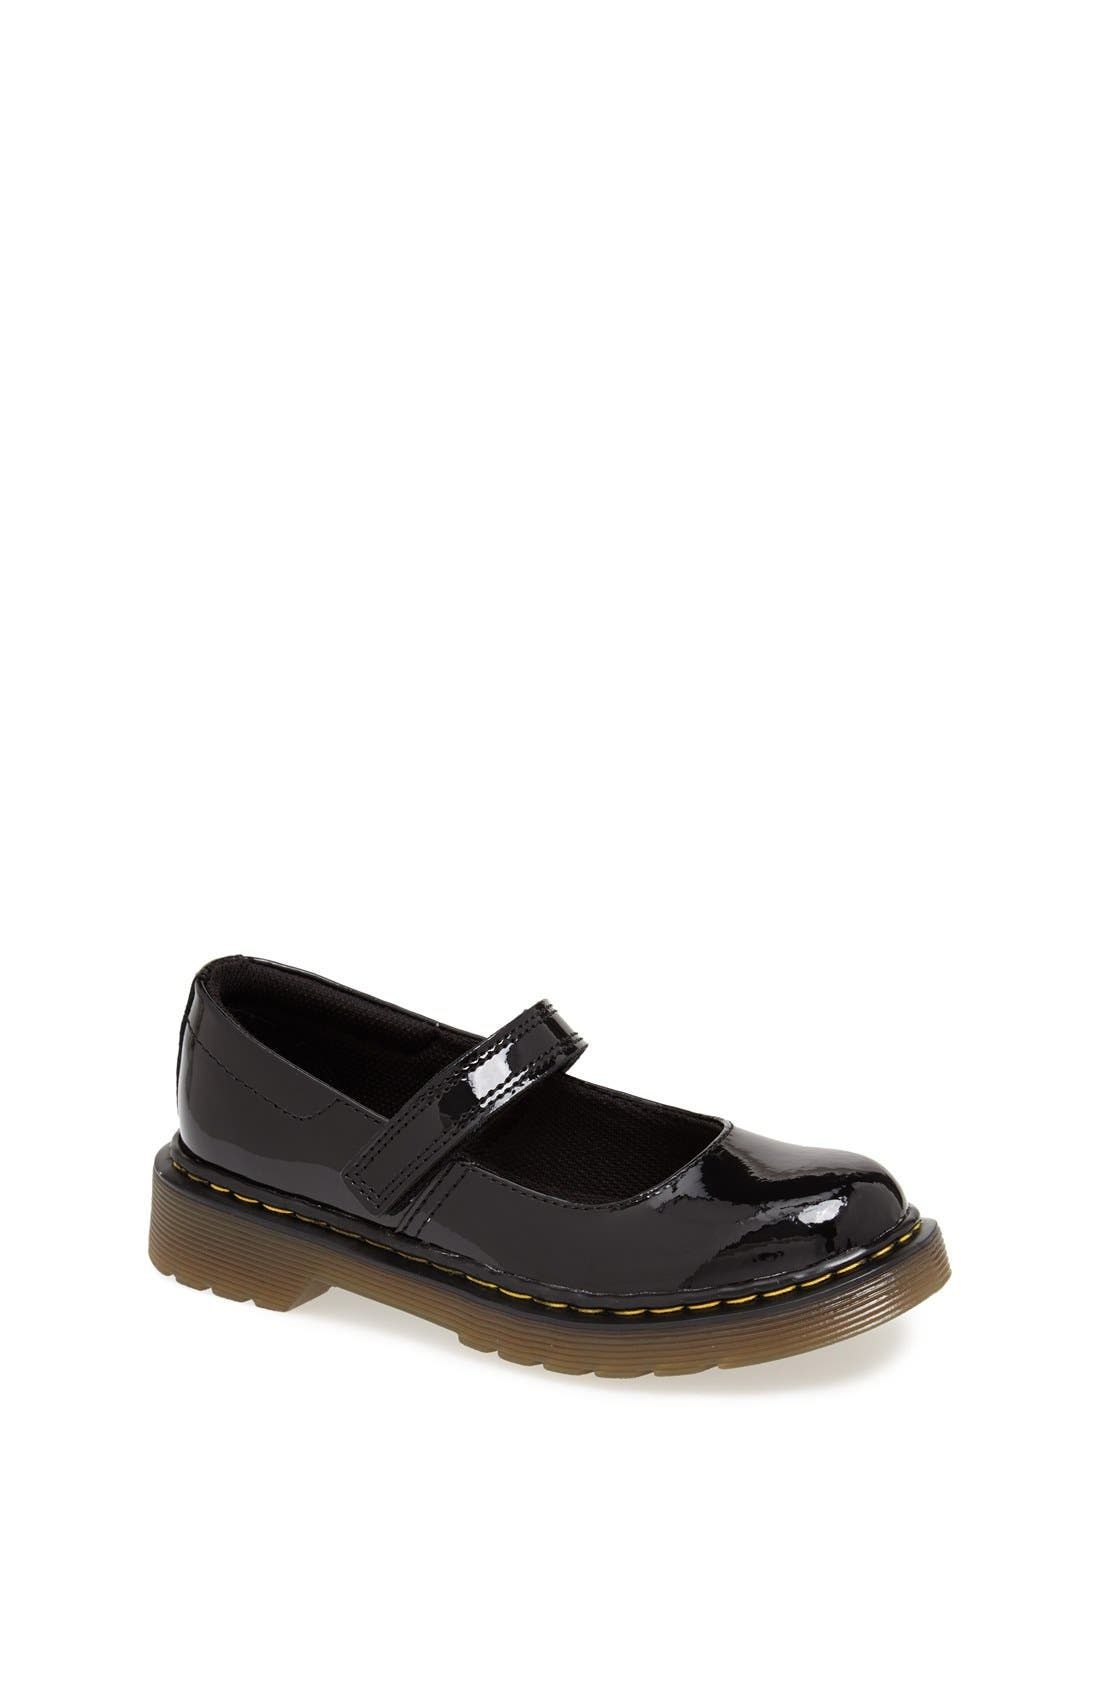 Main Image - Dr. Martens 'Maccy' Mary Jane (Toddler, Little Kid & Big Kid)